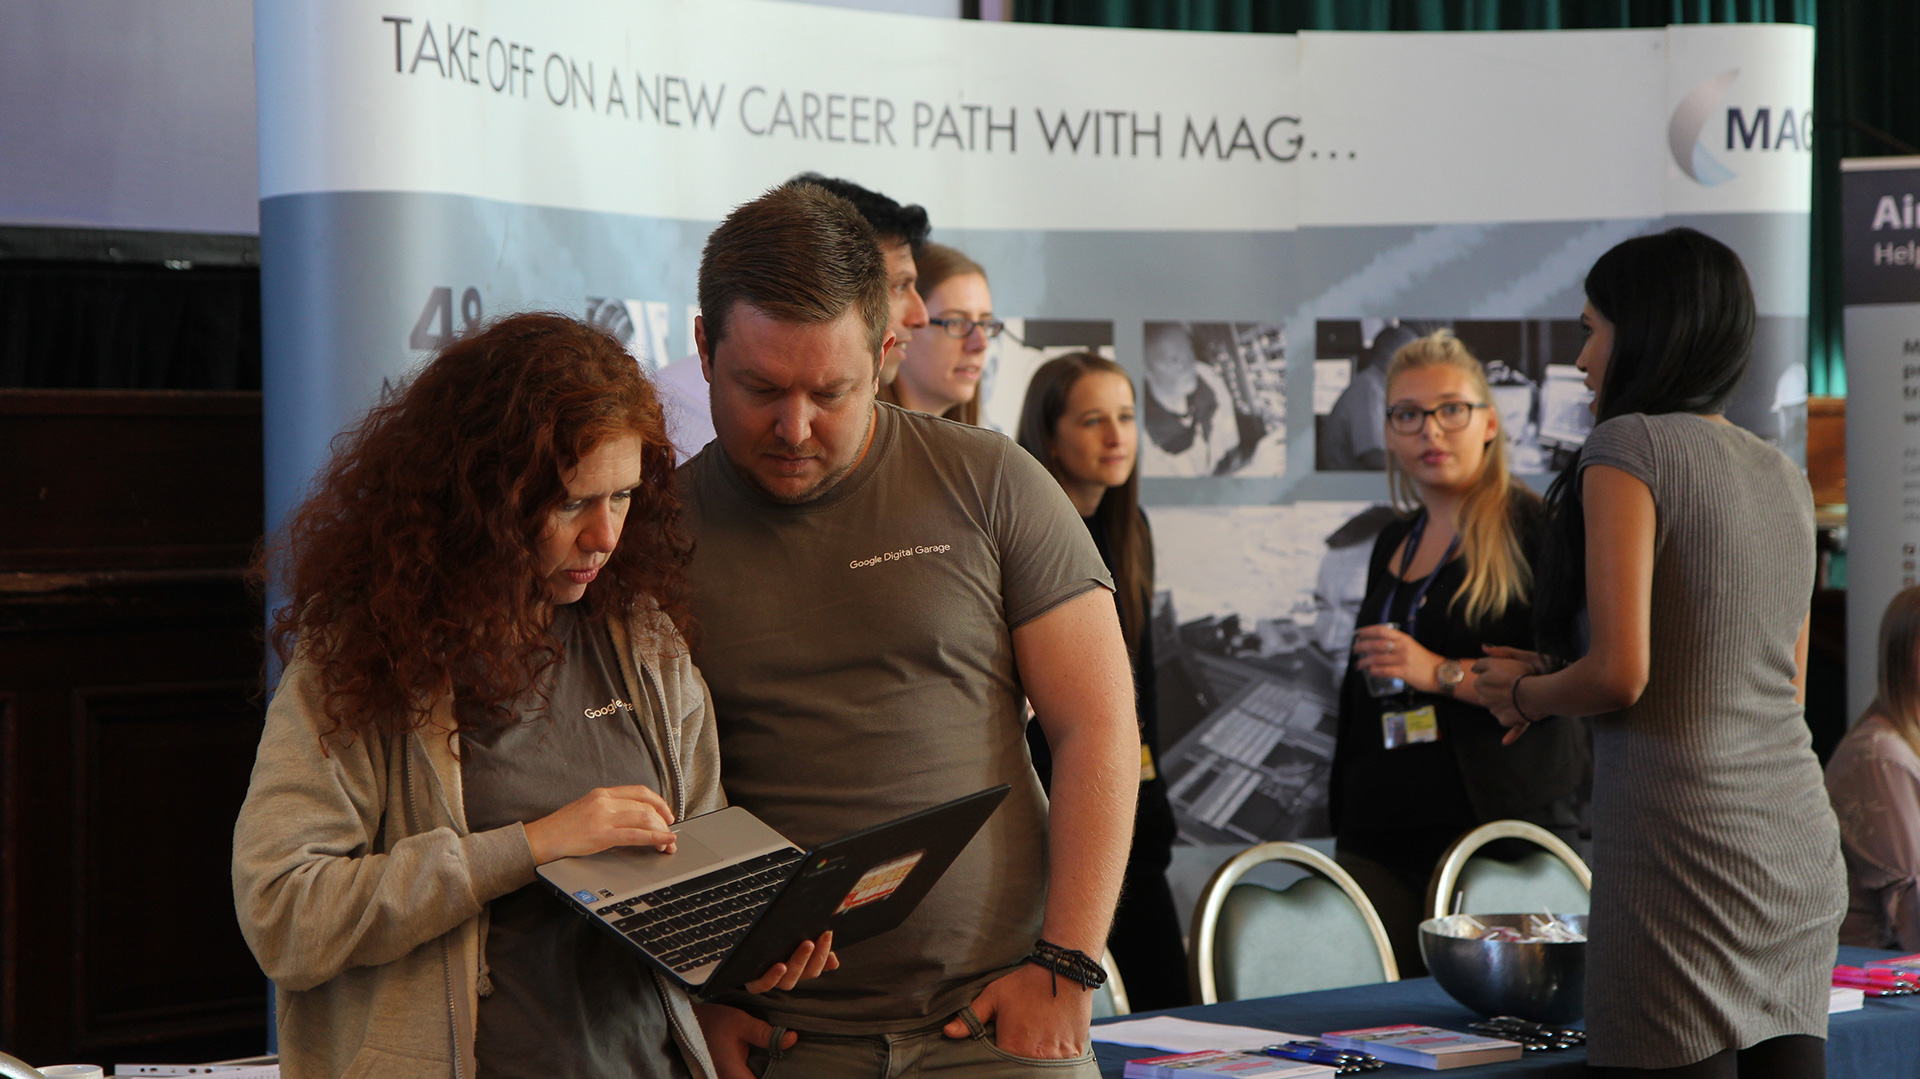 Successful jobs fair in Stockport